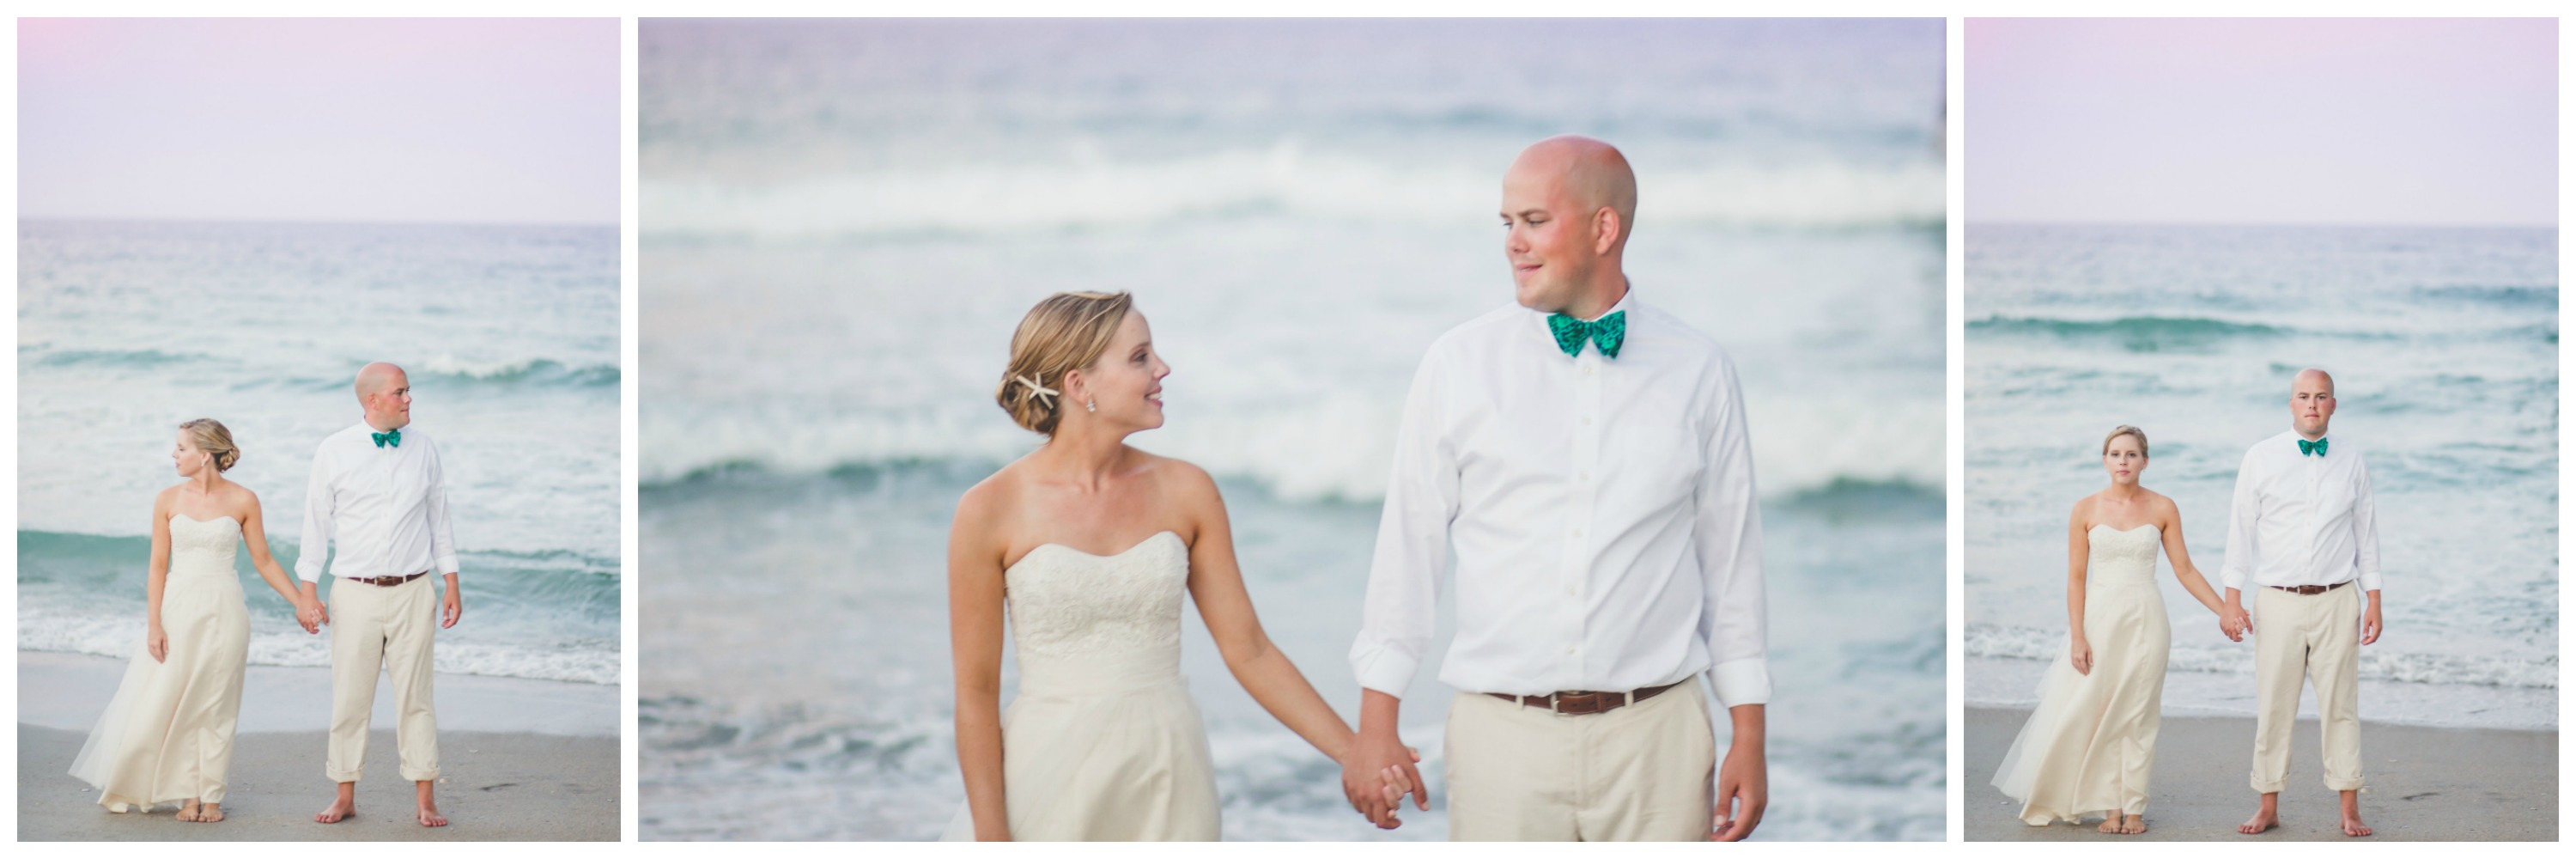 Raleigh Wedding Photographer | Images by Amber Robinson | Wrightsville Beach Wedding